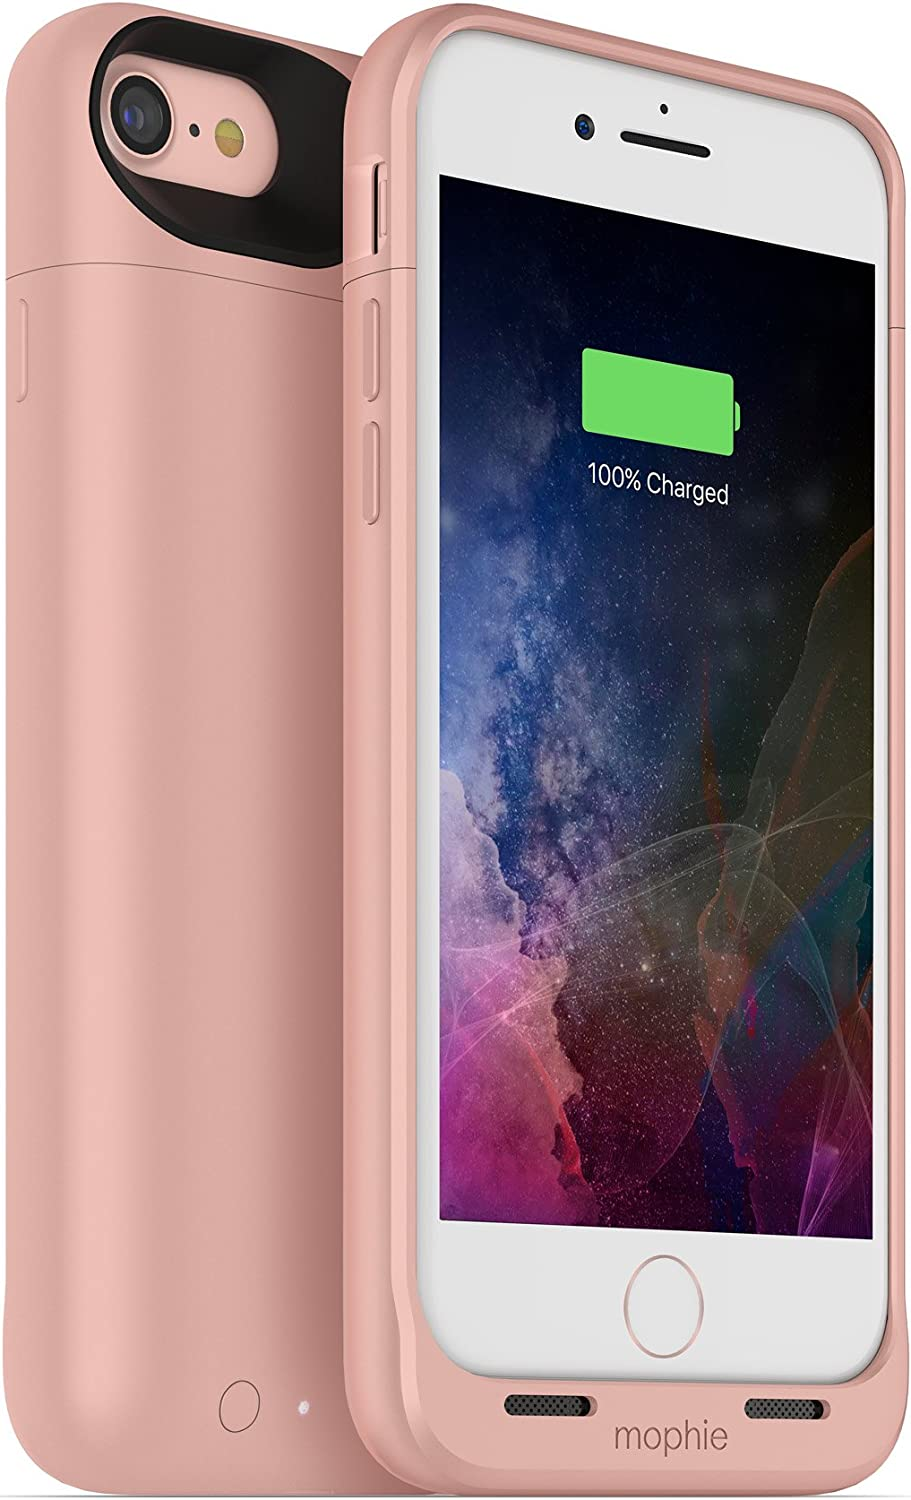 Amazon Com Mophie 3782 Jpa Ip7 Rgld Juice Pack Wireless Charge Force Wireless Power Wireless Charging Protective Battery Pack Case For Apple Iphone 8 And Iphone 7 Rose Gold The #1 selling mobile battery case brand. mophie 3782 jpa ip7 rgld juice pack wireless charge force wireless power wireless charging protective battery pack case for apple iphone 8 and